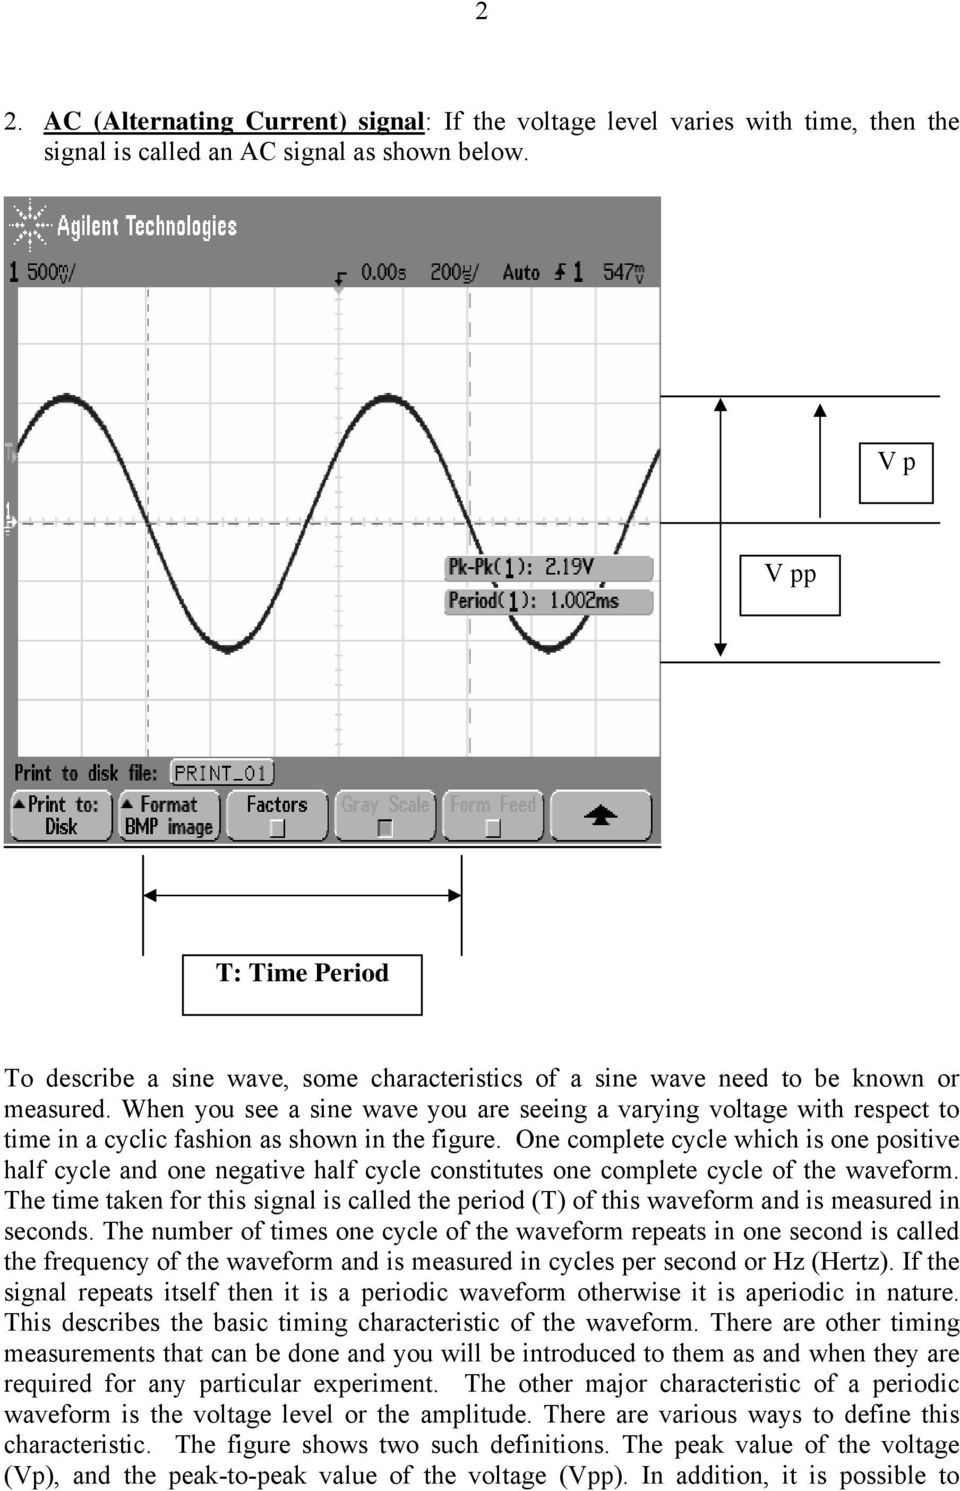 Experiment Number 5 Basic Oscilloscope Operations Pdf Rectifiercircuits2 When You See A Sine Wave Are Seeing Varying Voltage With Respect To Time